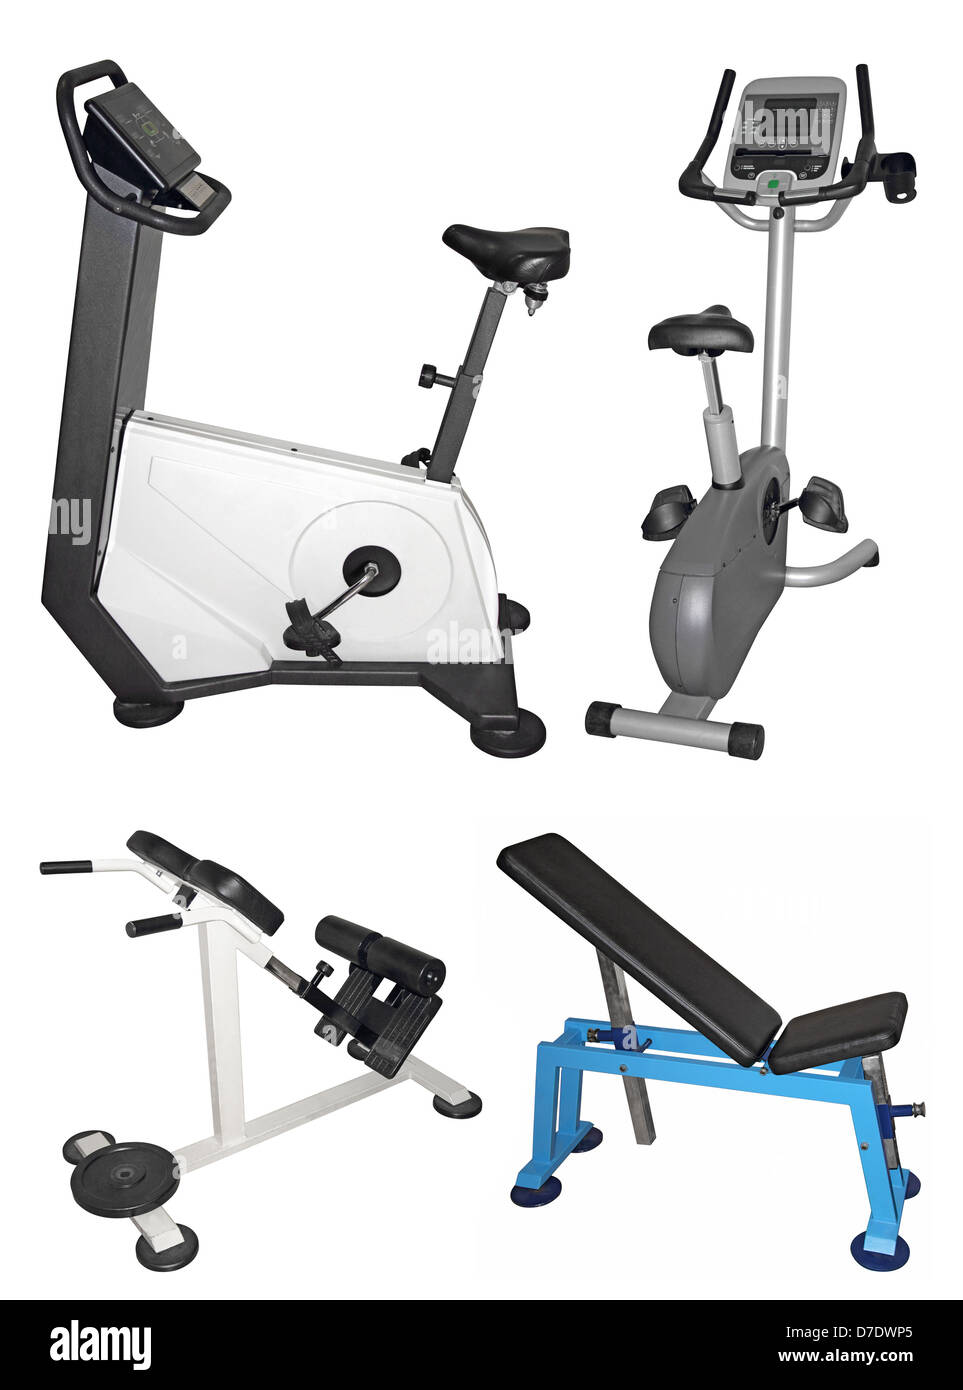 Stationary bike and bench for exercising isolated on white background - Stock Image